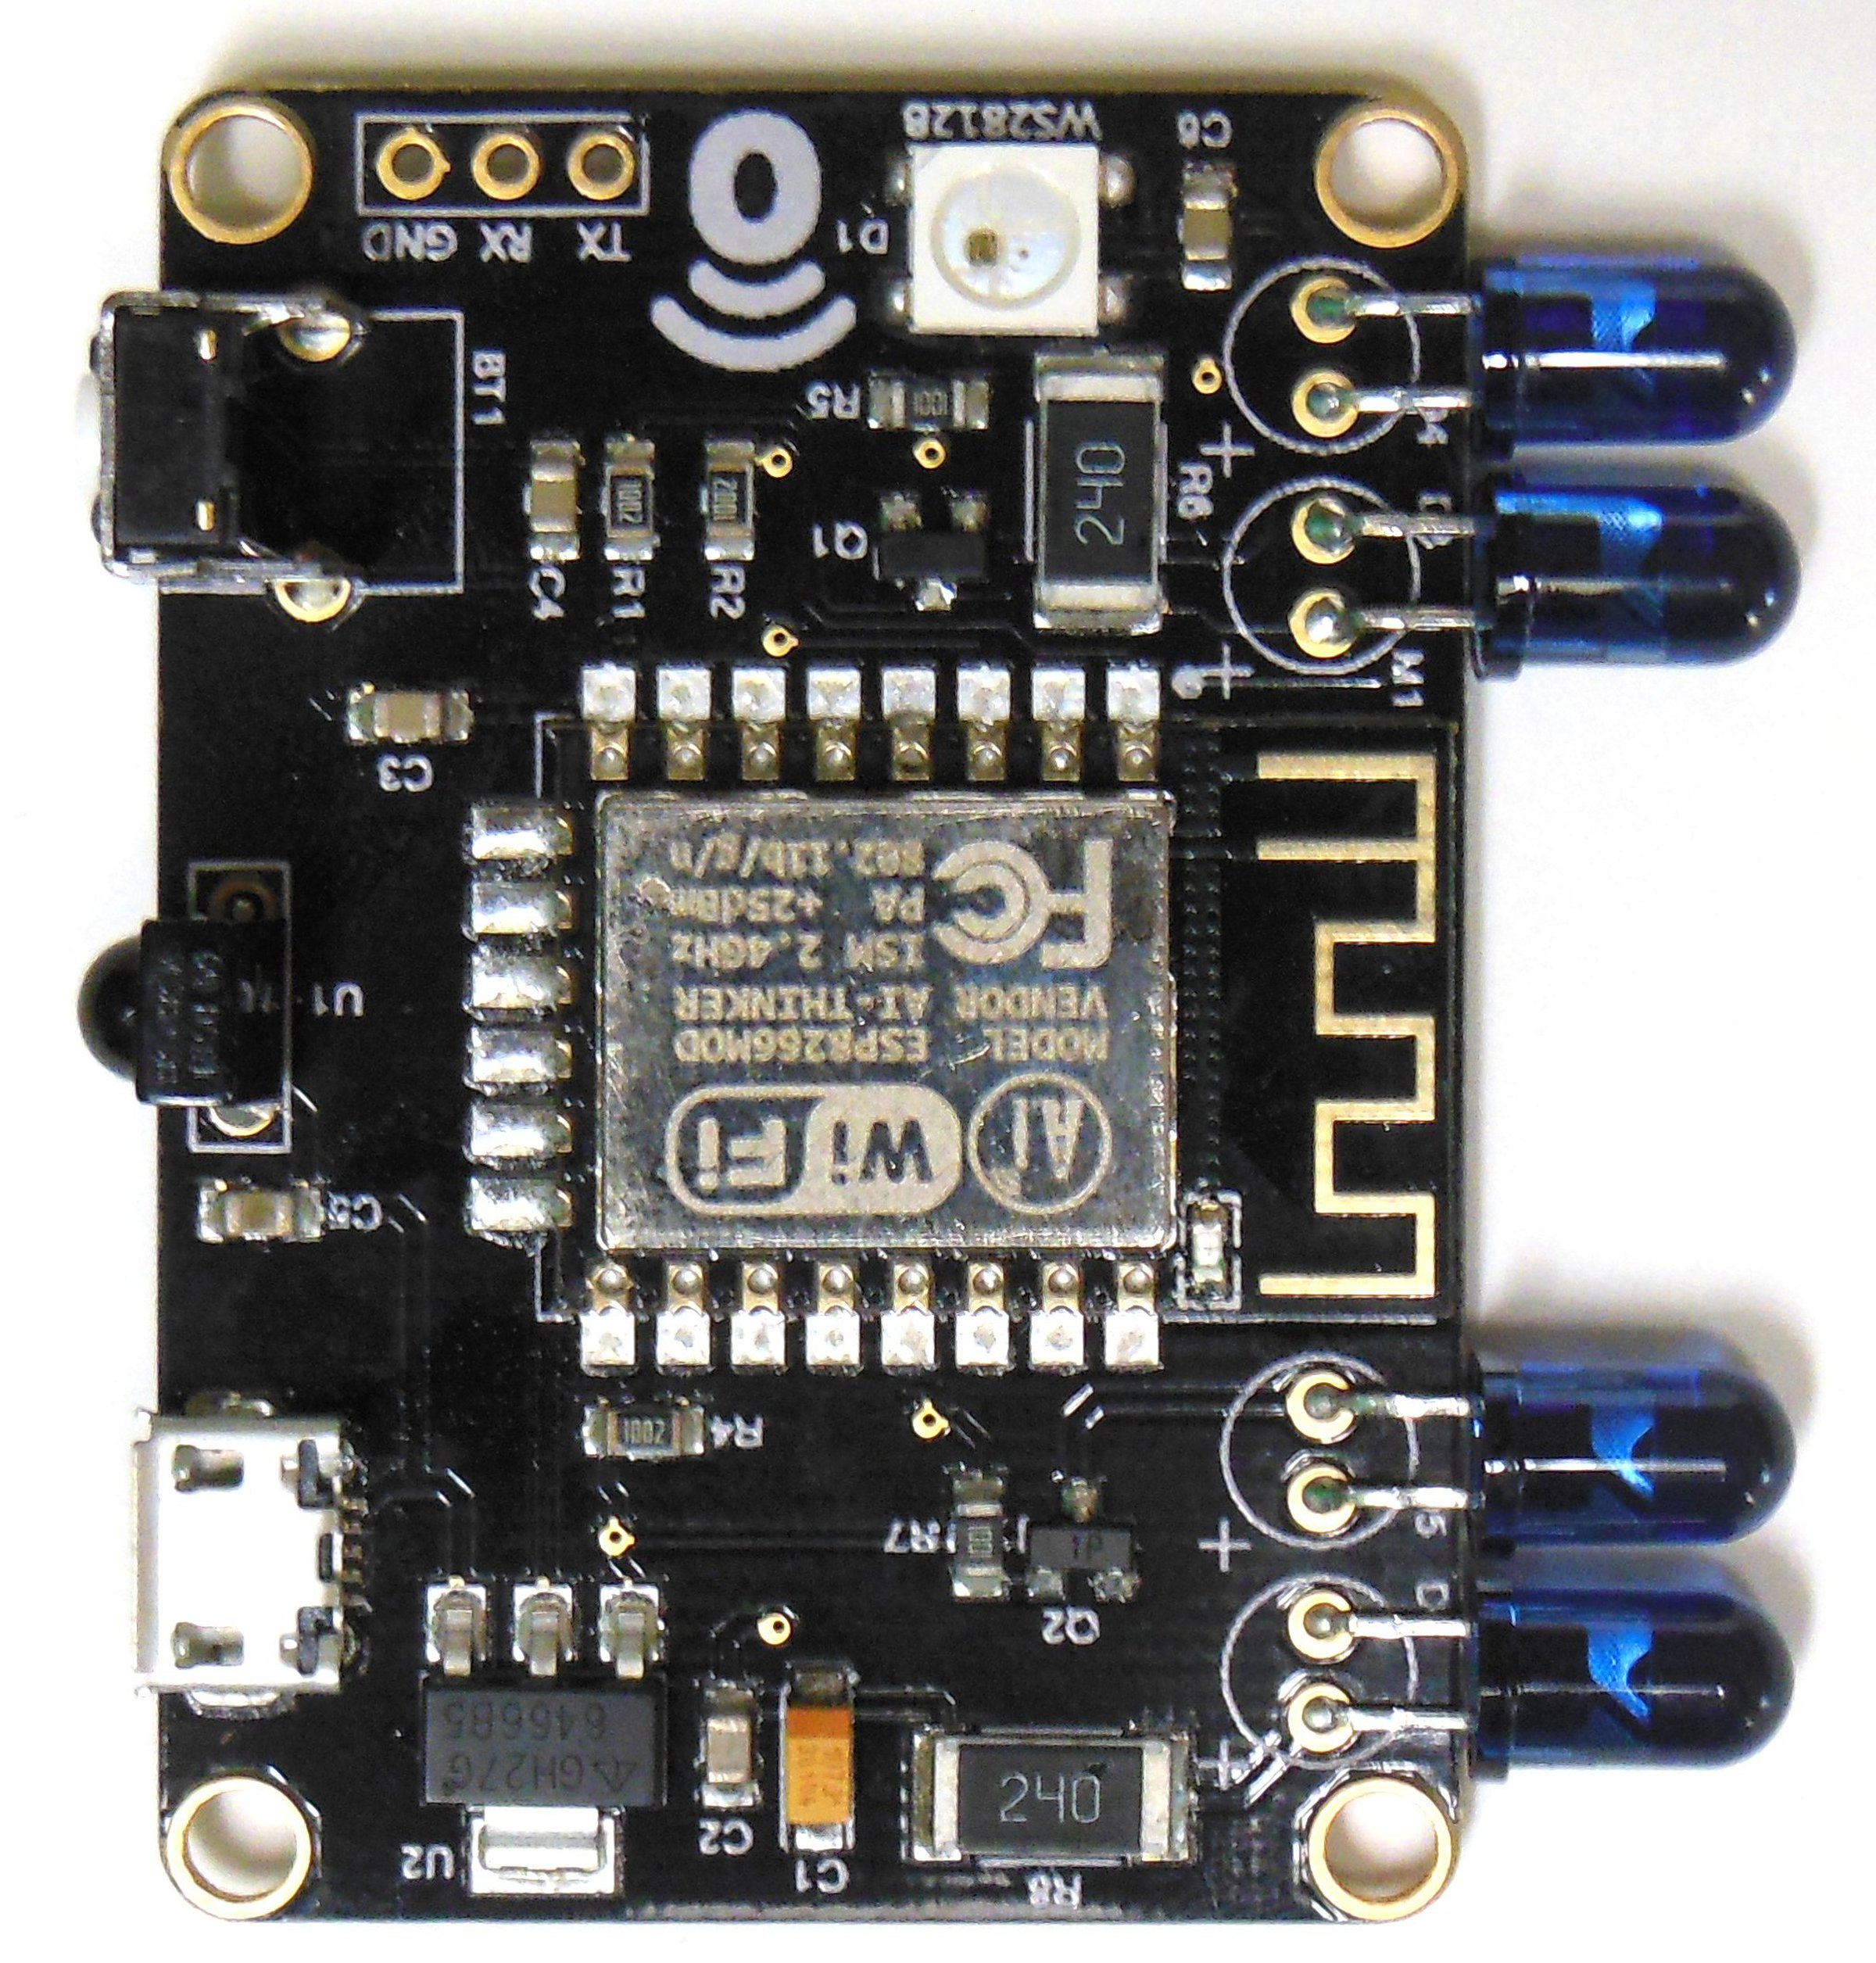 Remotsy Pcb Infrared Blaster From On Tindie Remote Control Transmitter Integrated Circuit 1